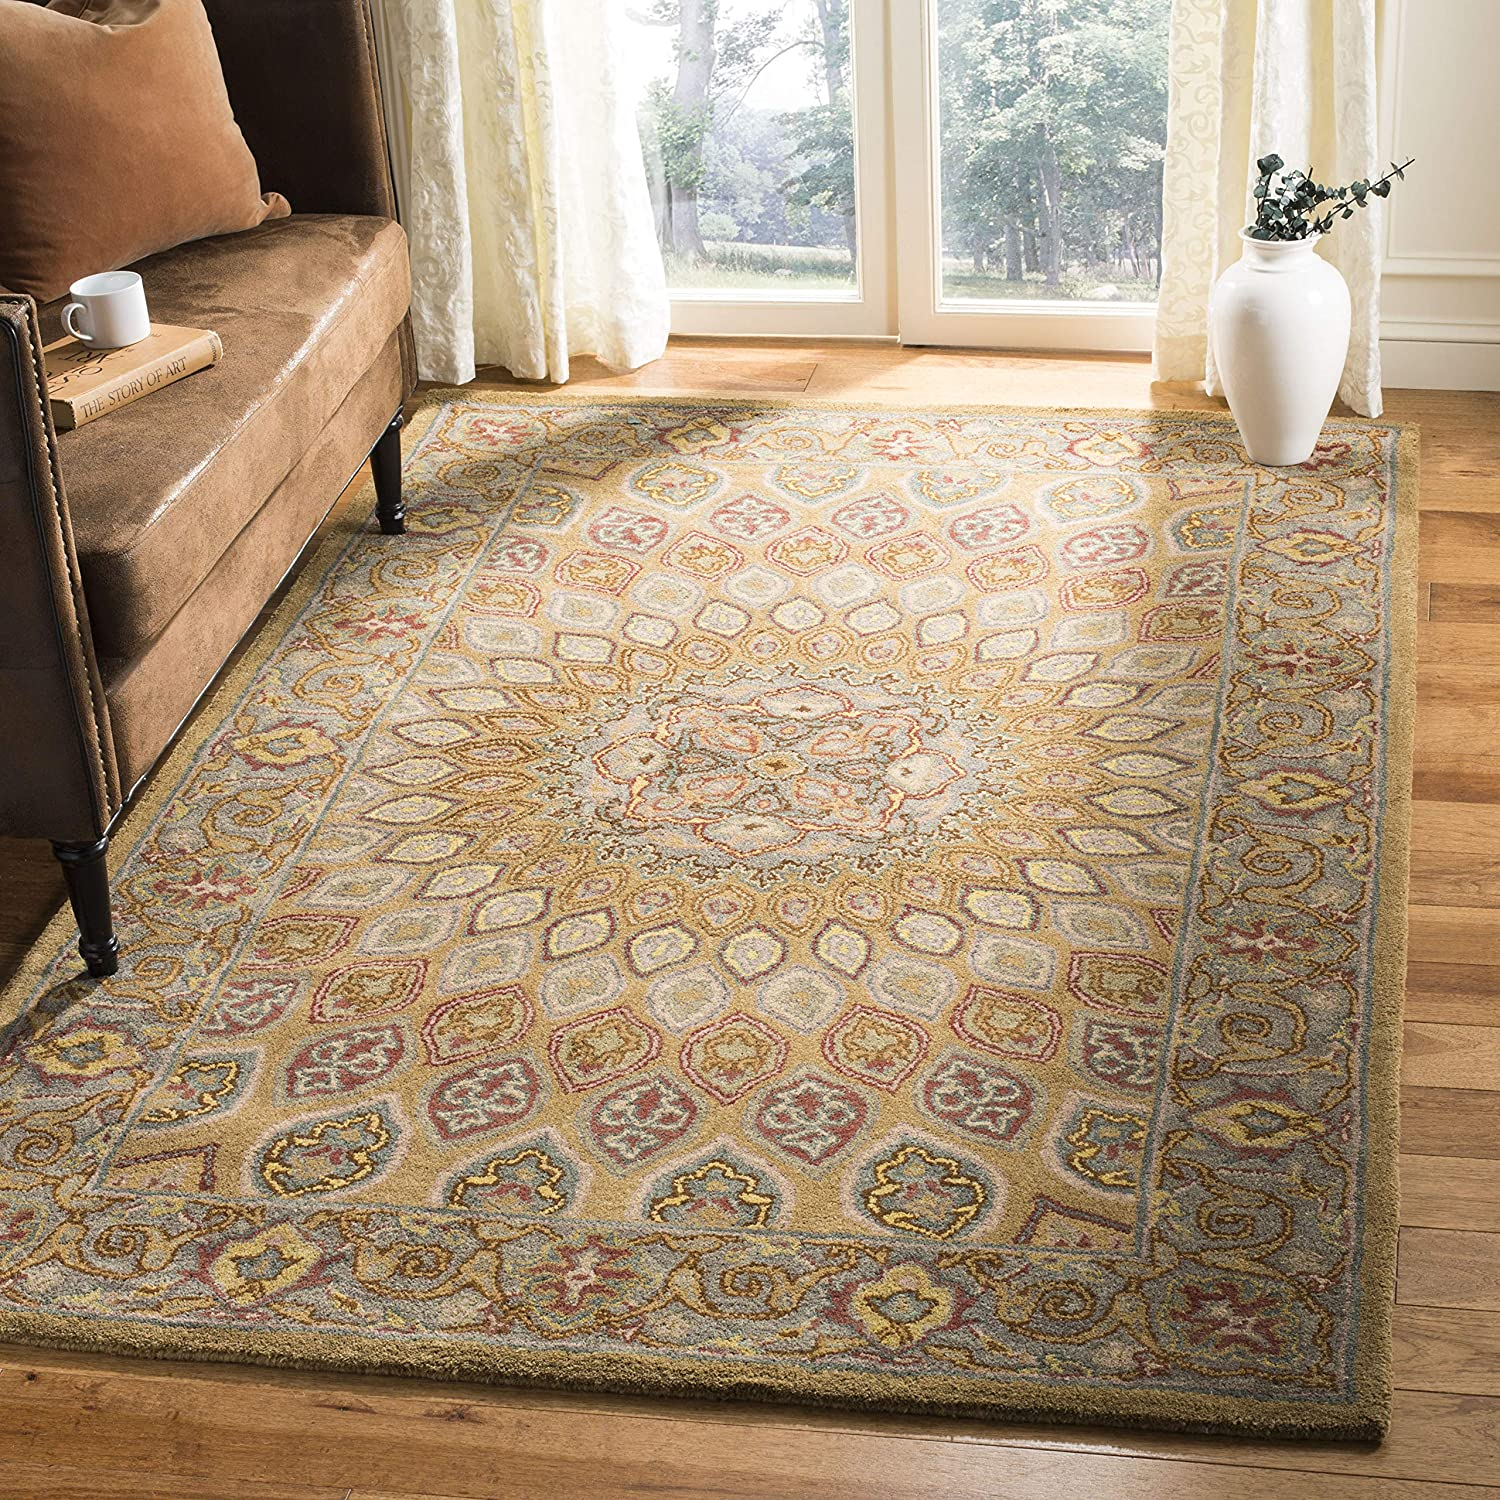 Safavieh outlet Heritage Collection HG914A Orienta Handmade Free shipping on posting reviews Traditional